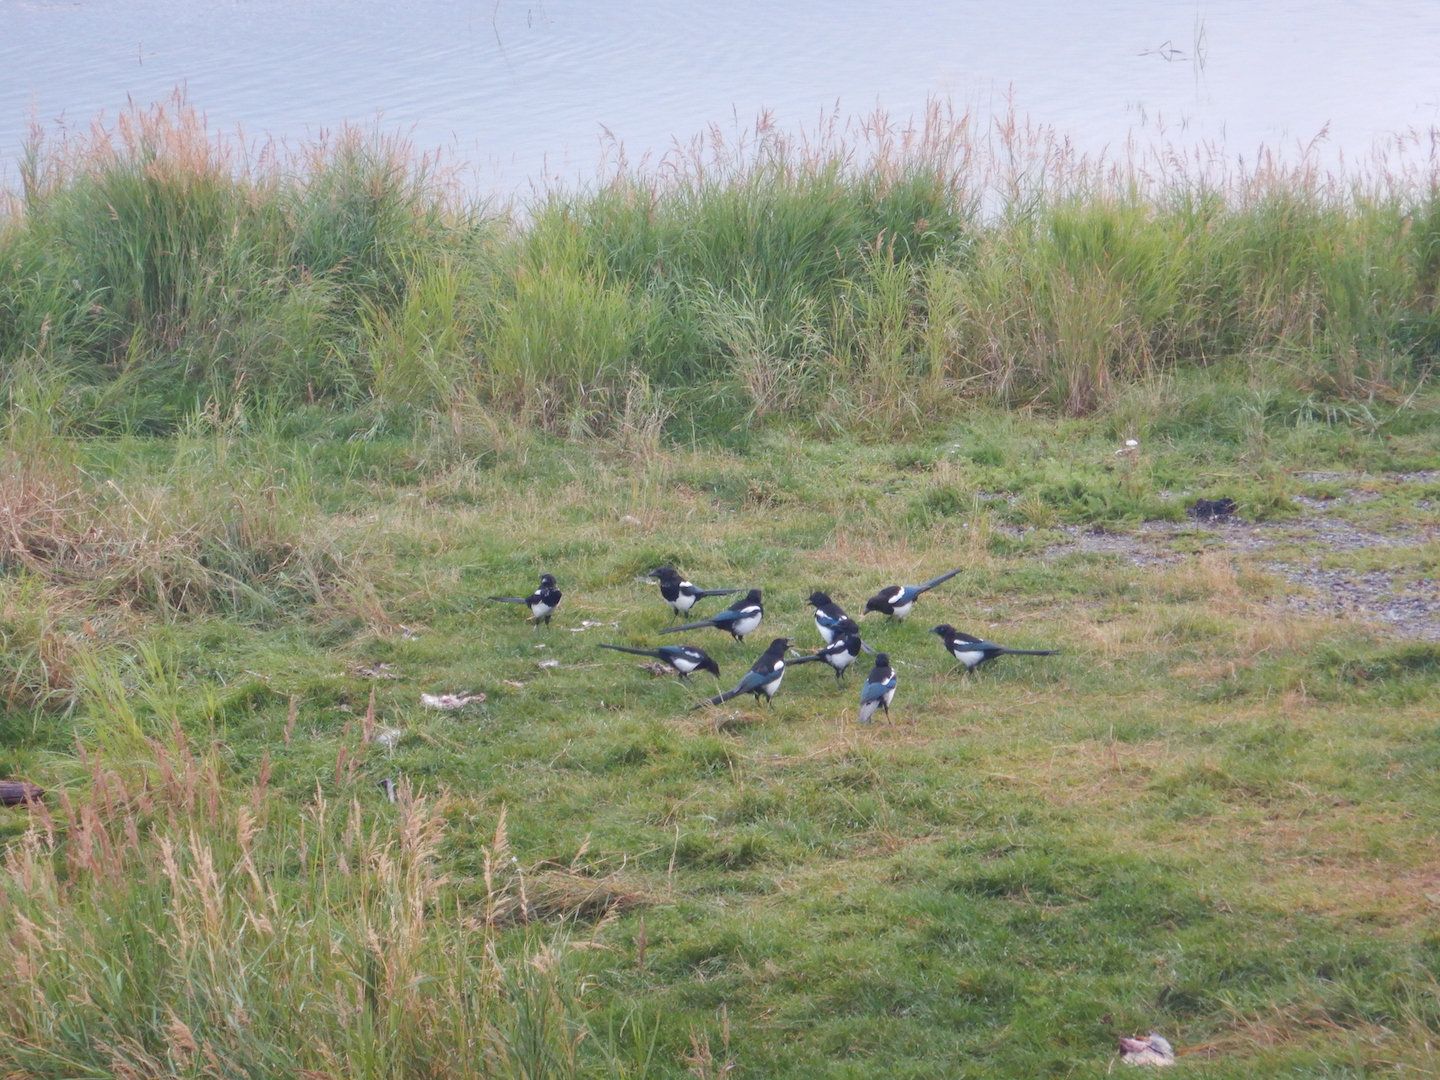 group of 11 black and white magpies in grass